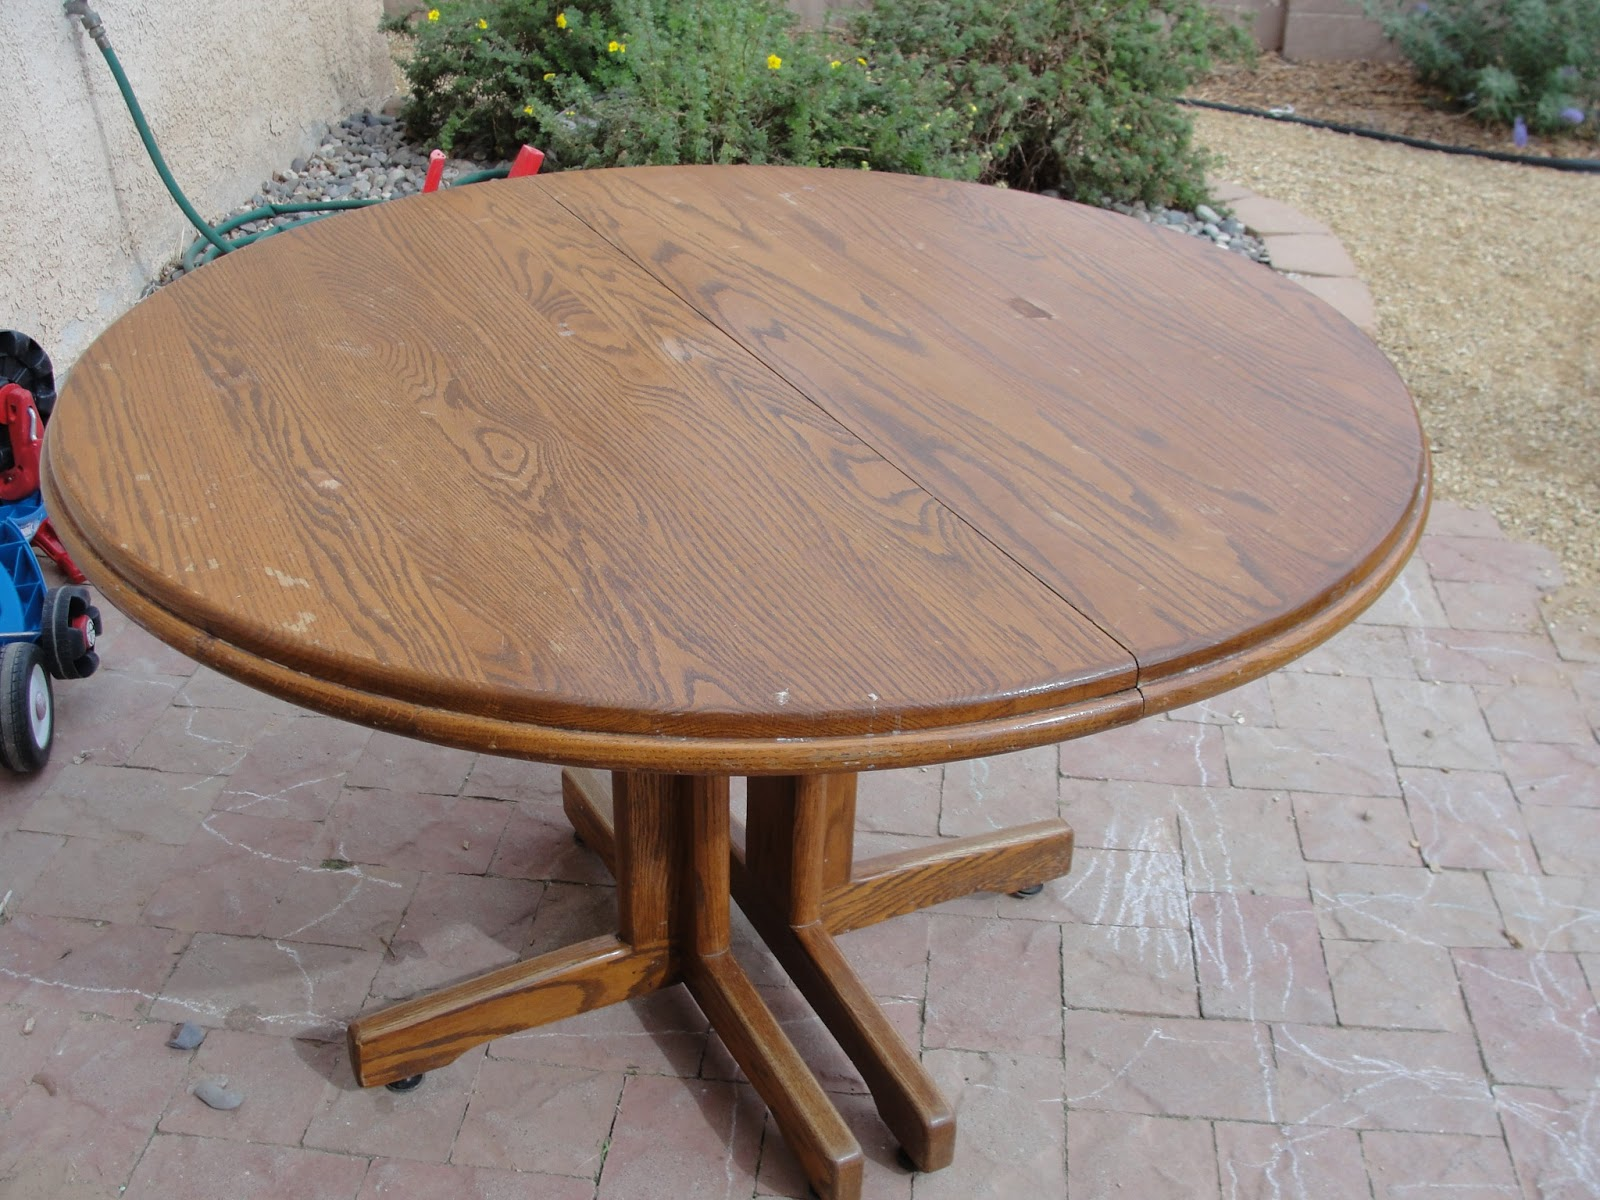 This Is My Friend Katie S Table It A Very Large Tiger Oak Has 3 Inserts So Huge She Wanted Refinished I Started